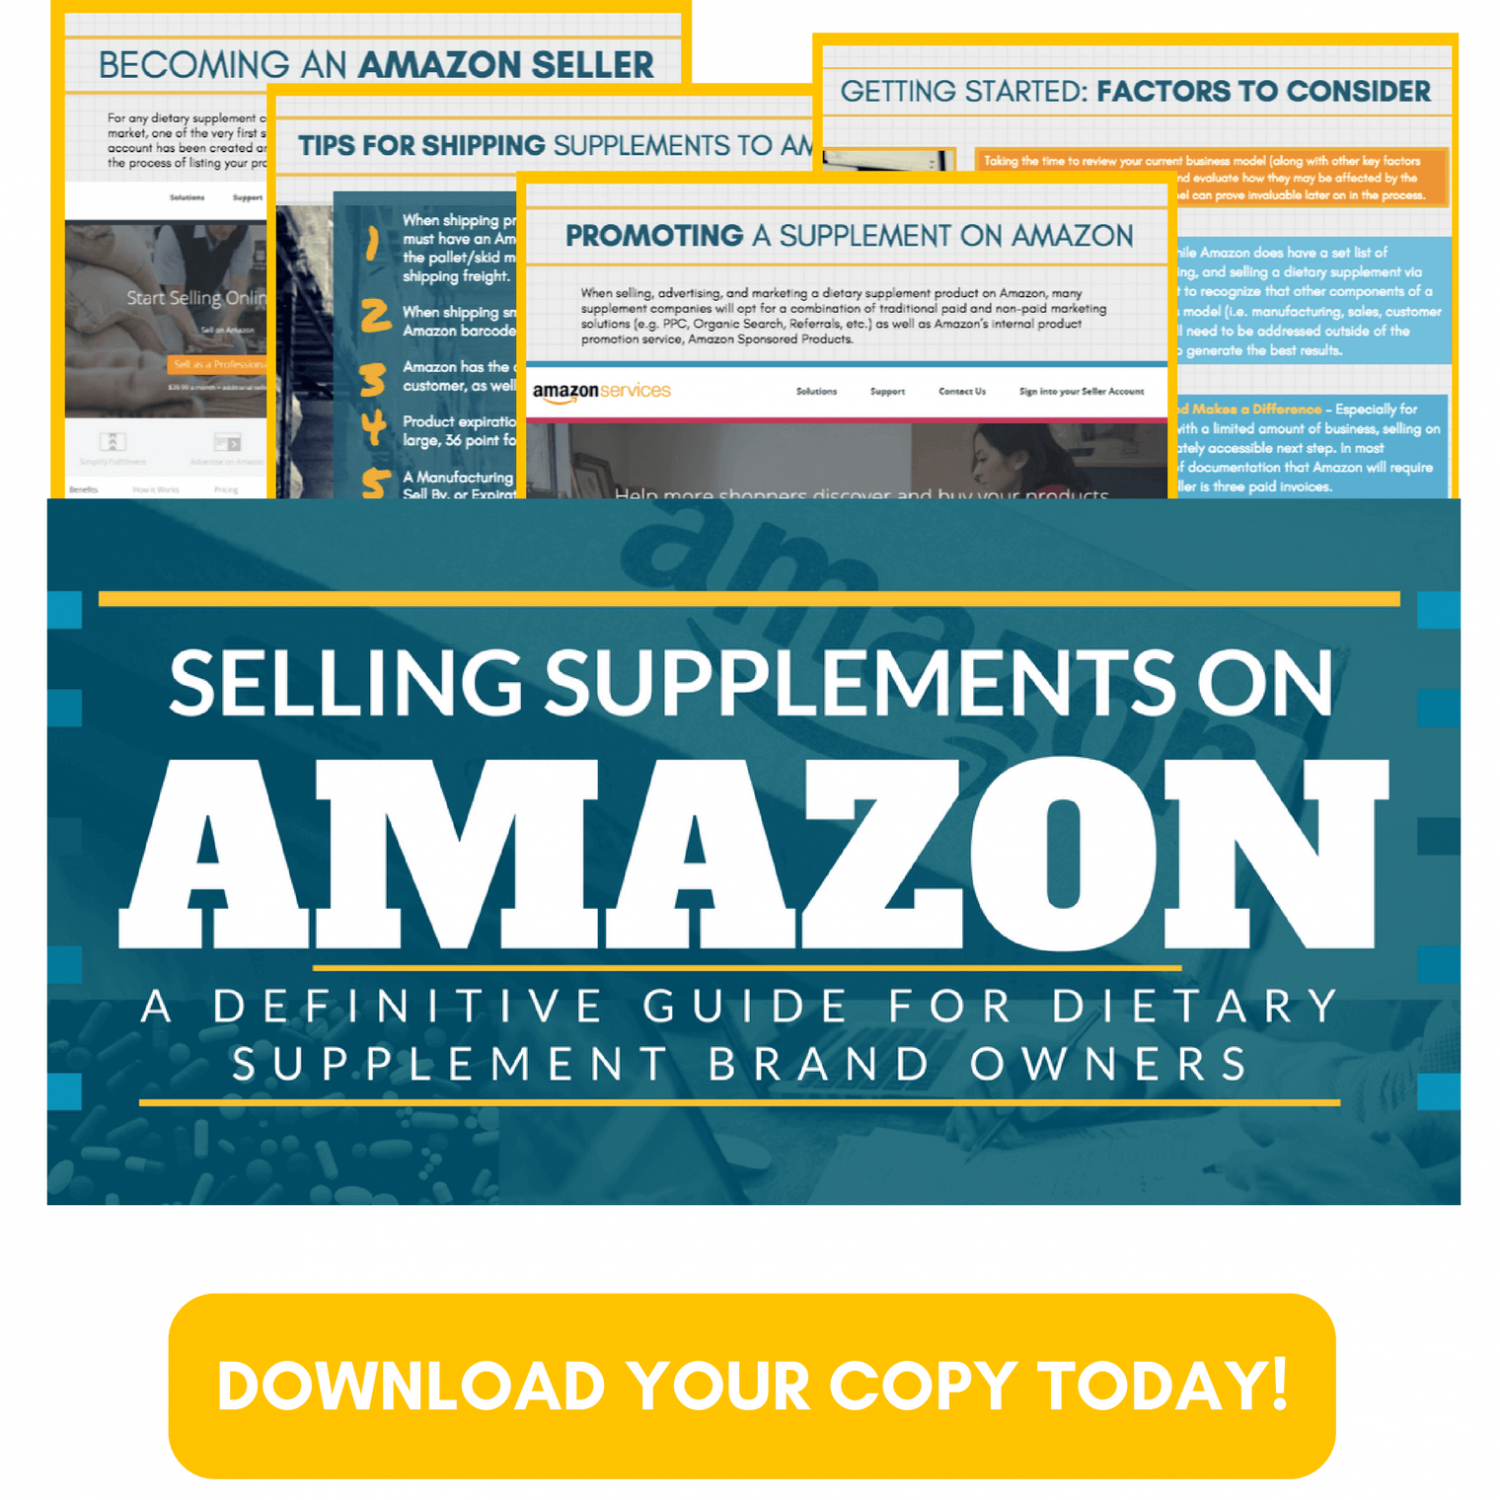 Download Your Copy of 'The Definitive Guide to Selling Supplements on Amazon' Today!